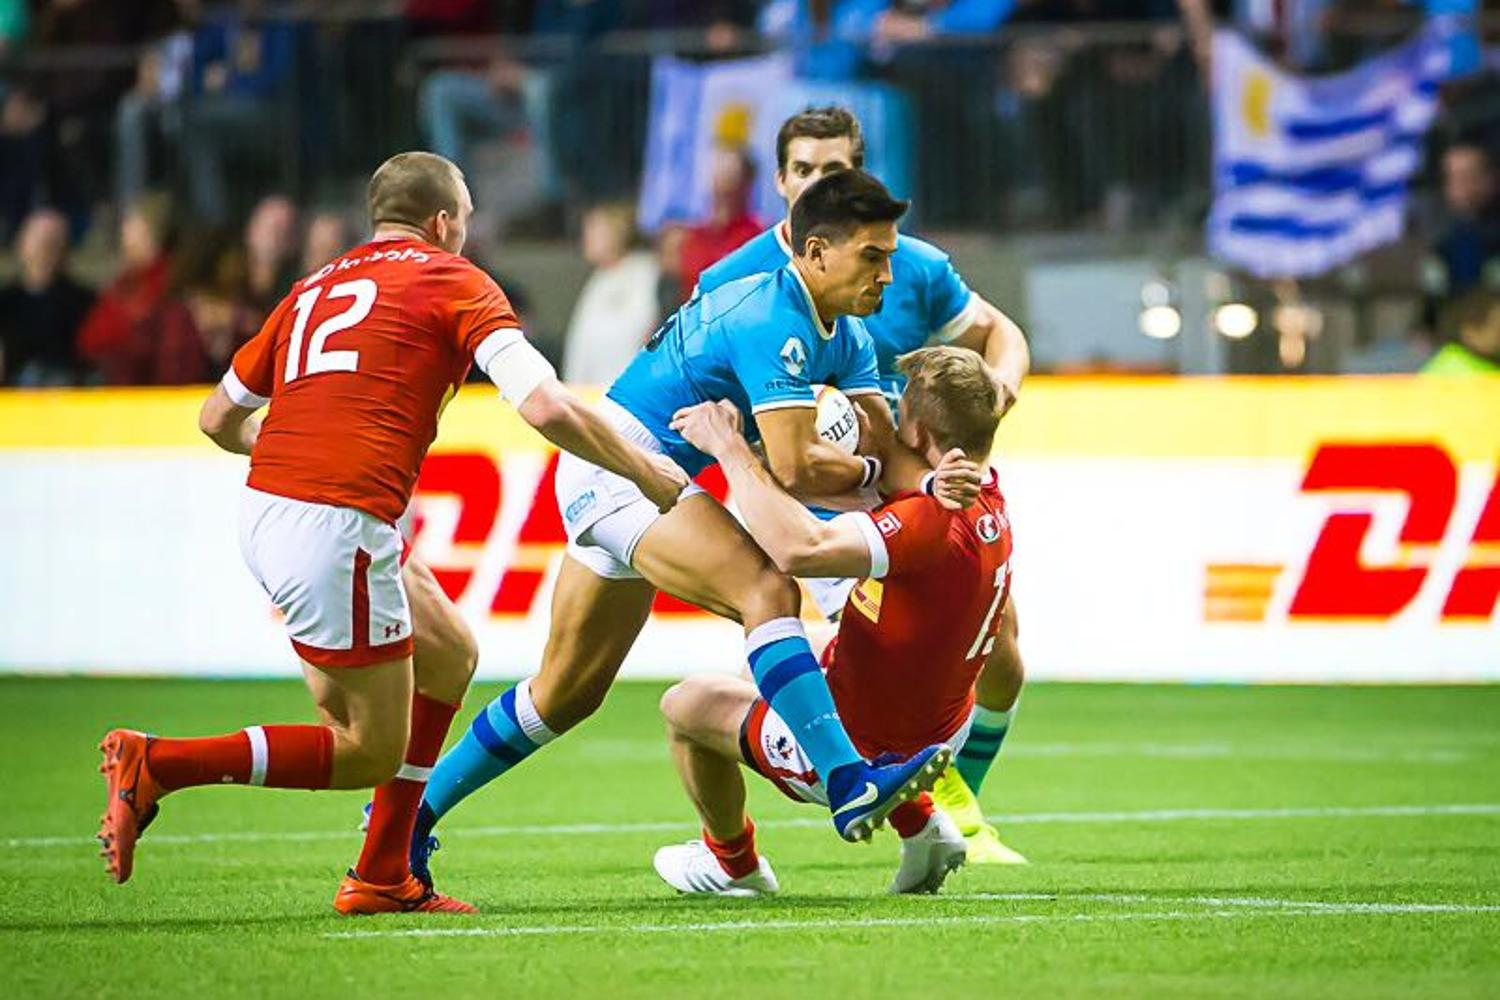 Rugby World Cup 2019 Qualifying and Americas Rugby Championship 2018 - Canada v Uruguay